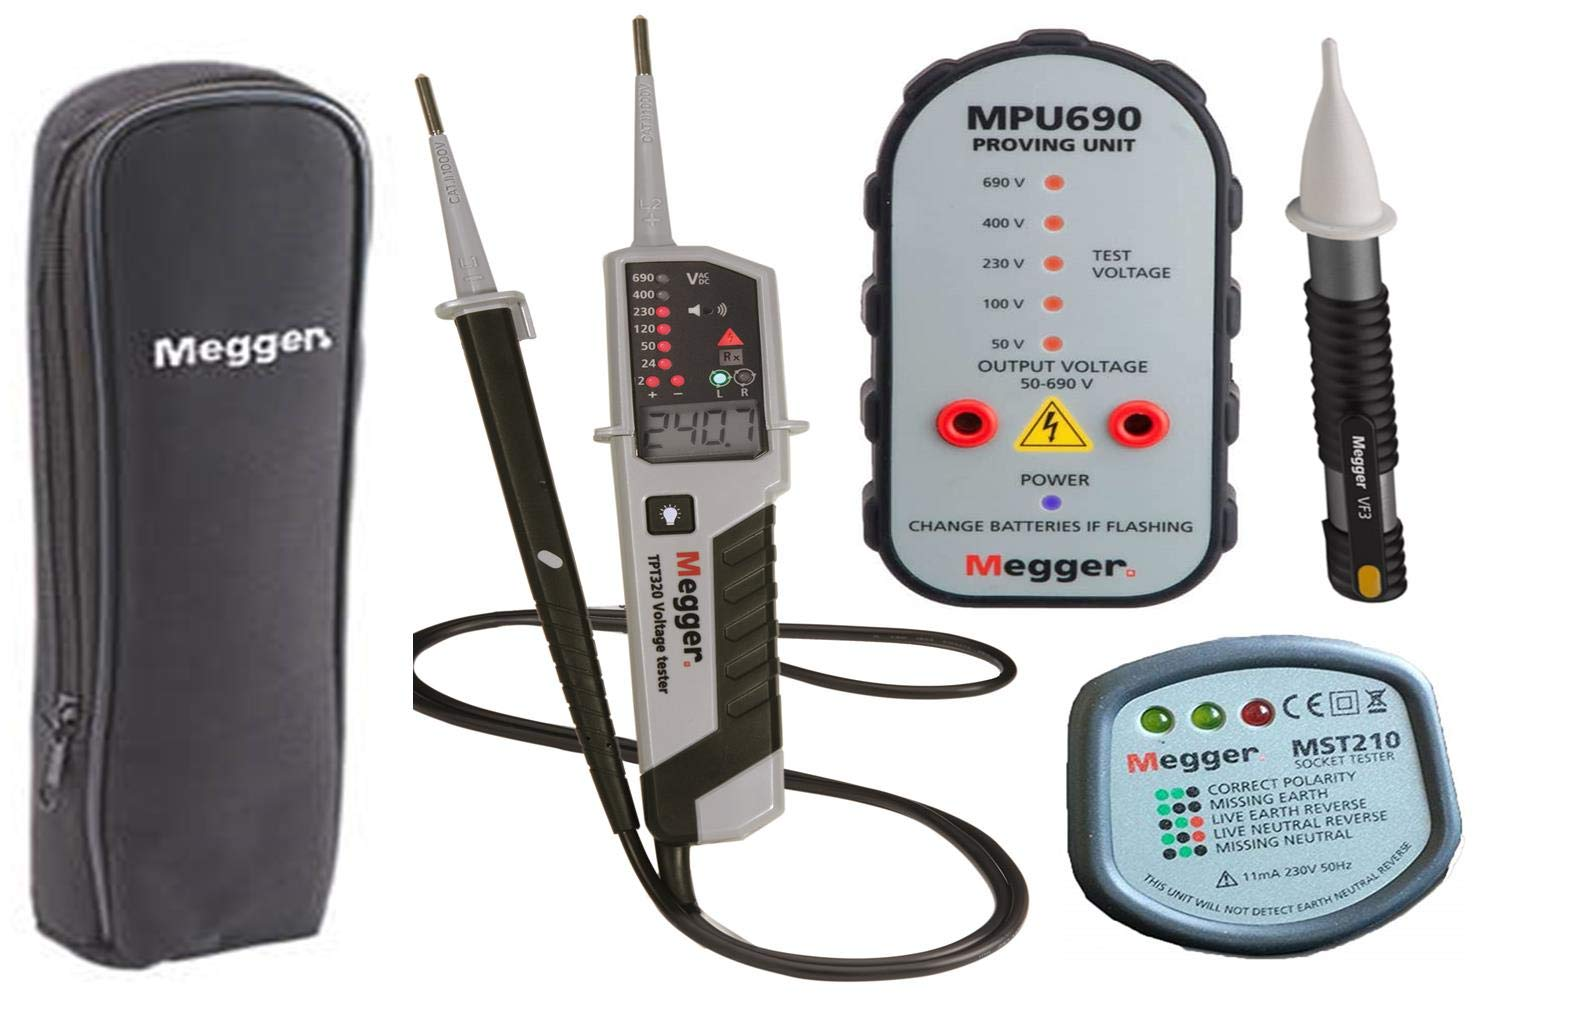 Continuity /& Phase Rotation Tester M Megger TPT320 KIT19 Voltage /& Continuity Tester Megger TPT320 LCD /& LED VF2 Can Be Used For Testing Auto Electrical And Fire Alarm Systems 12 To 690 Volt AC//DC MST210 /& Case Kit 0 To 500 Kilohm Two Pole Voltage